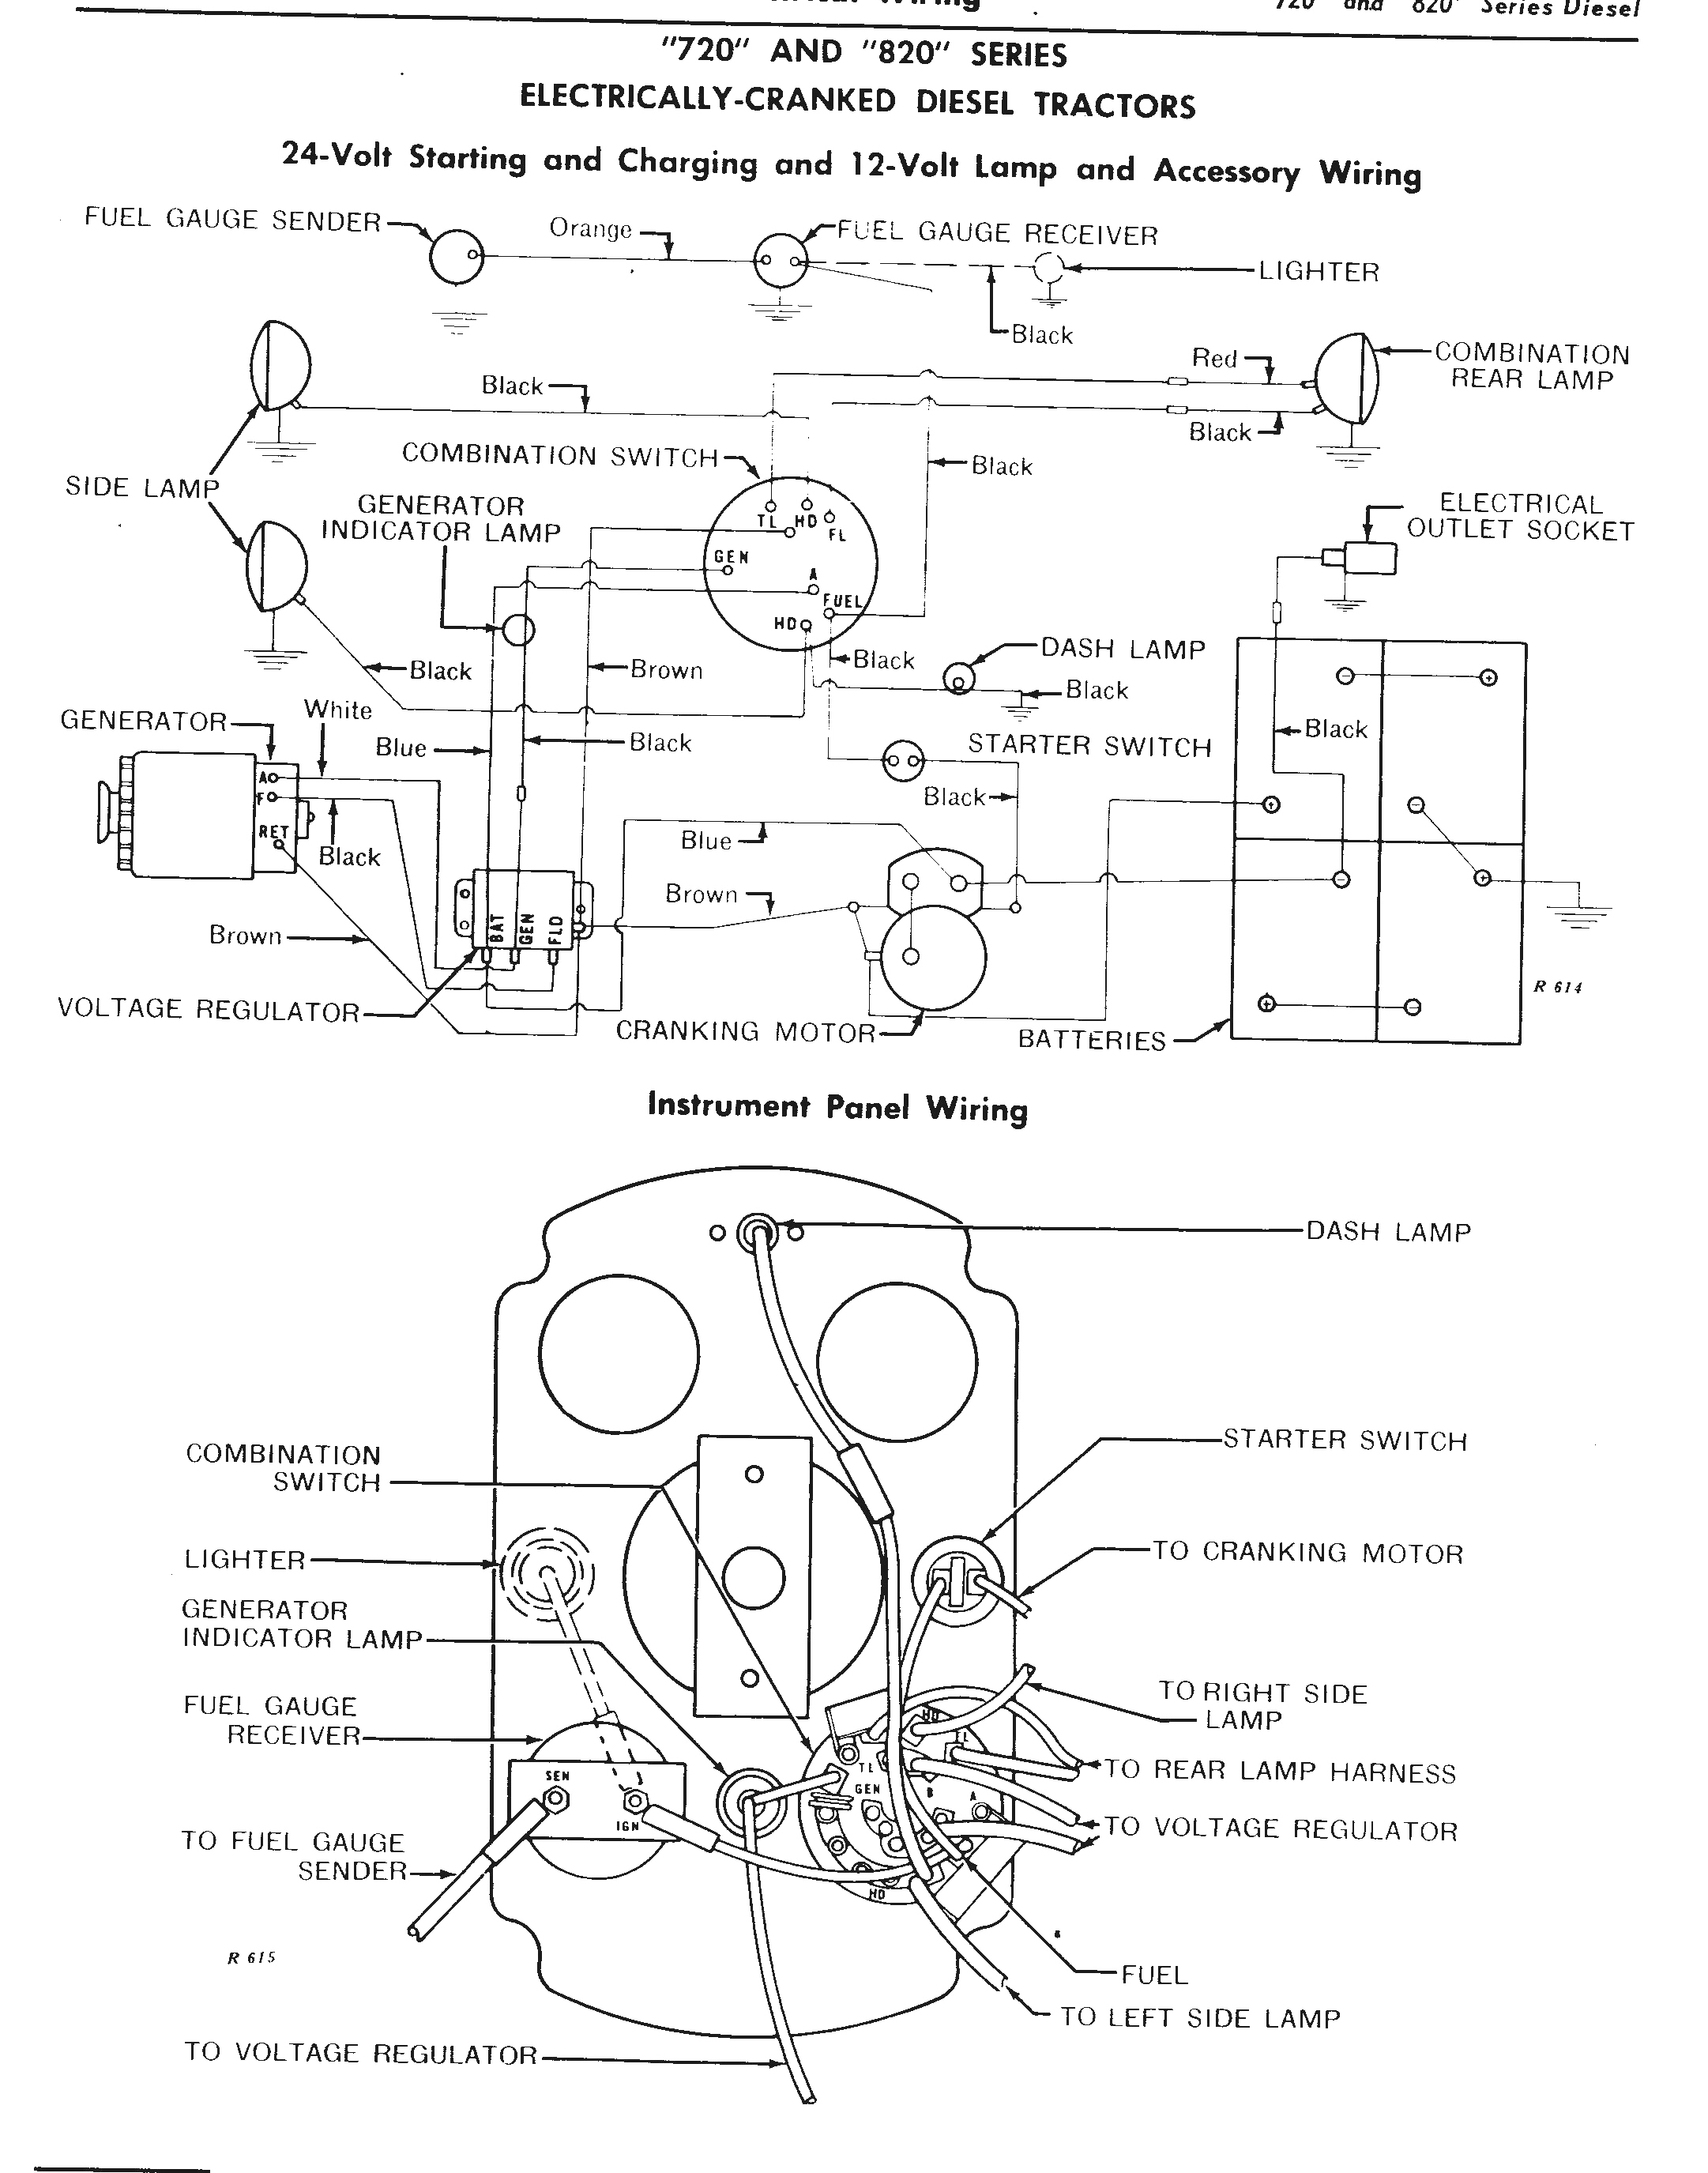 The John Deere 24 Volt Electrical System Explained Farm Pro Tractor Wiring Diagram